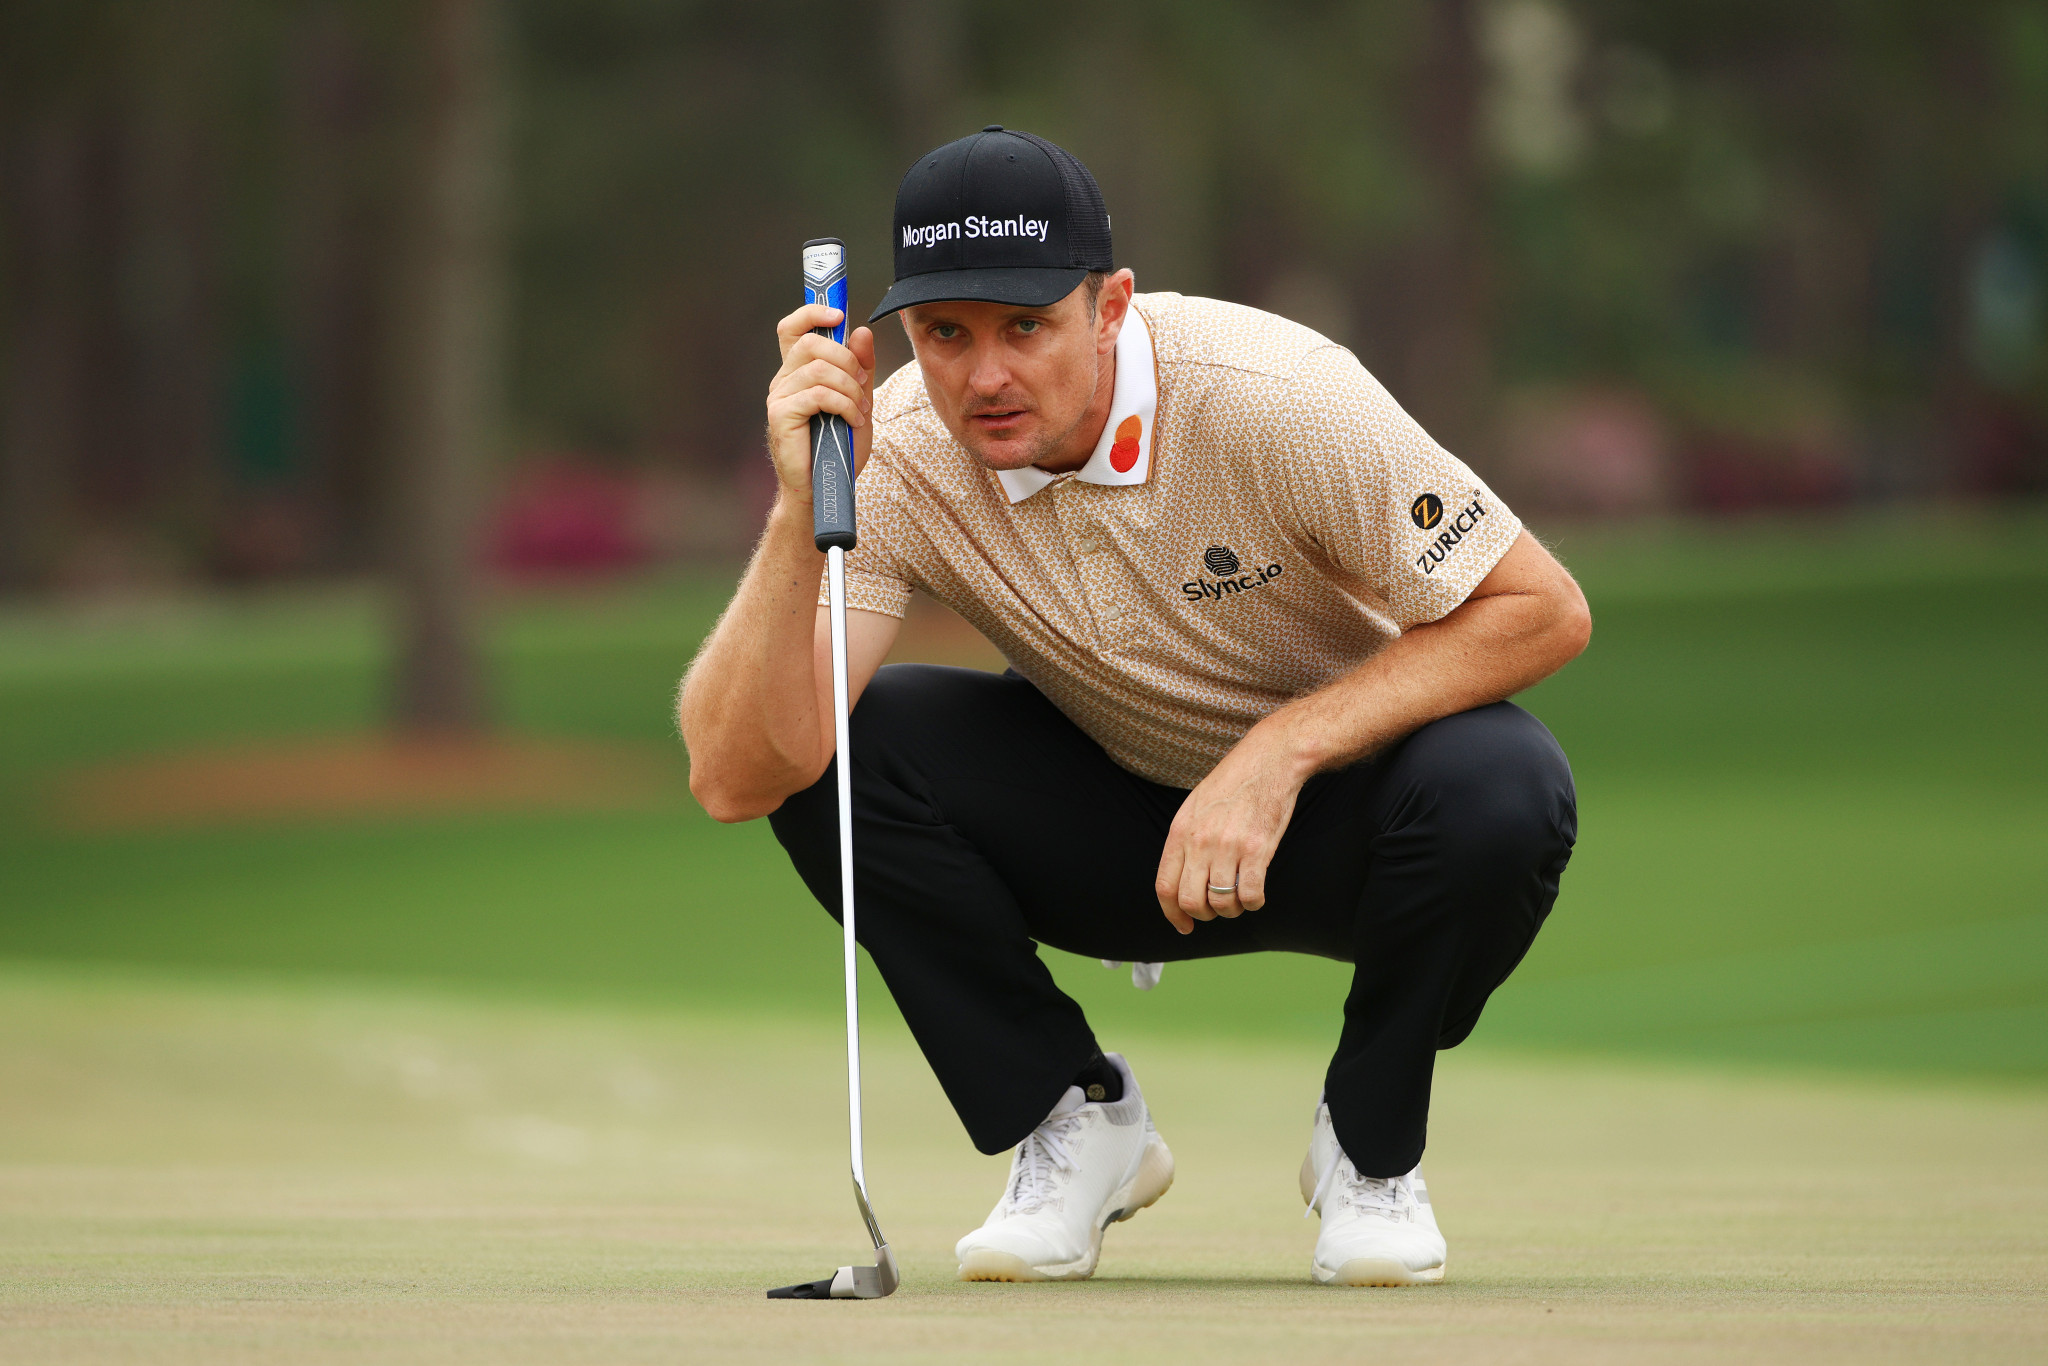 Justin Rose -Olympic champion at Rio 2016 - was controversially left out of the European team for the Ryder Cup ©Getty Images